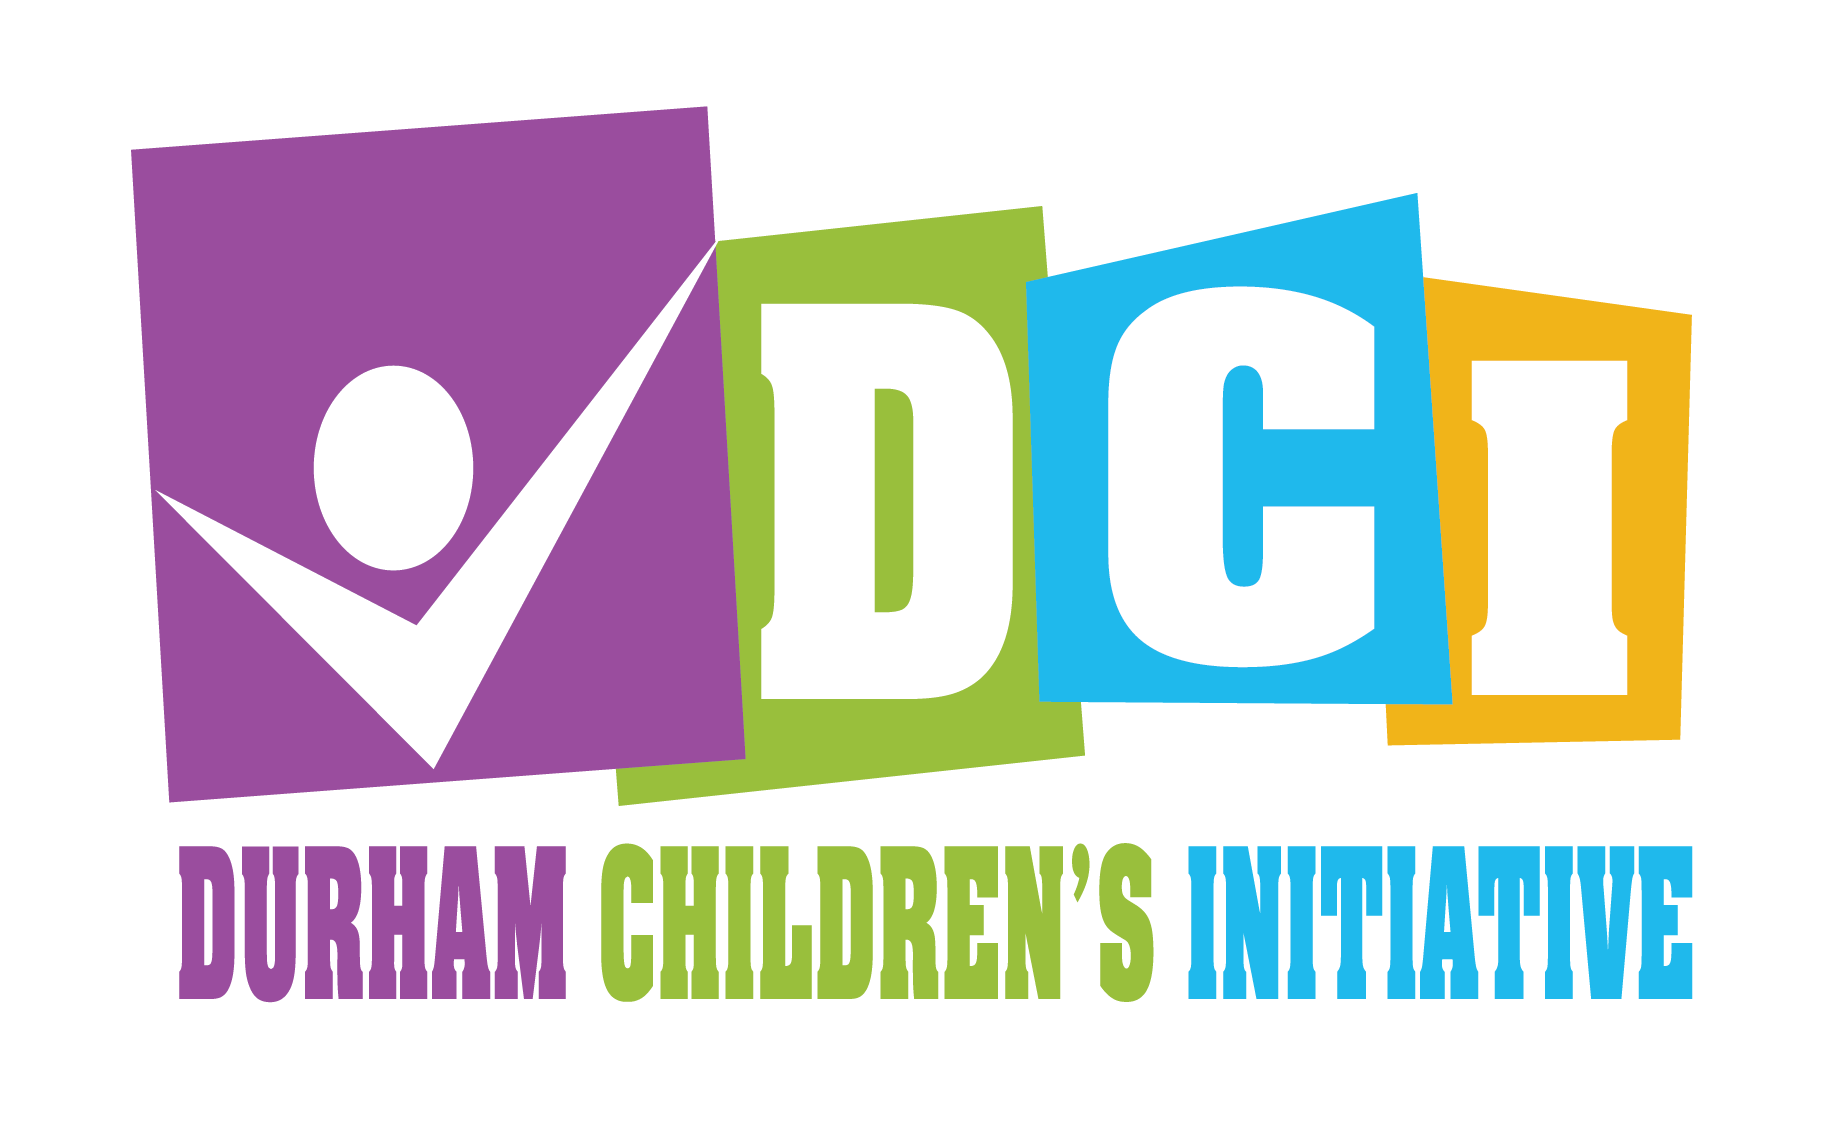 Durham Children's Initiative